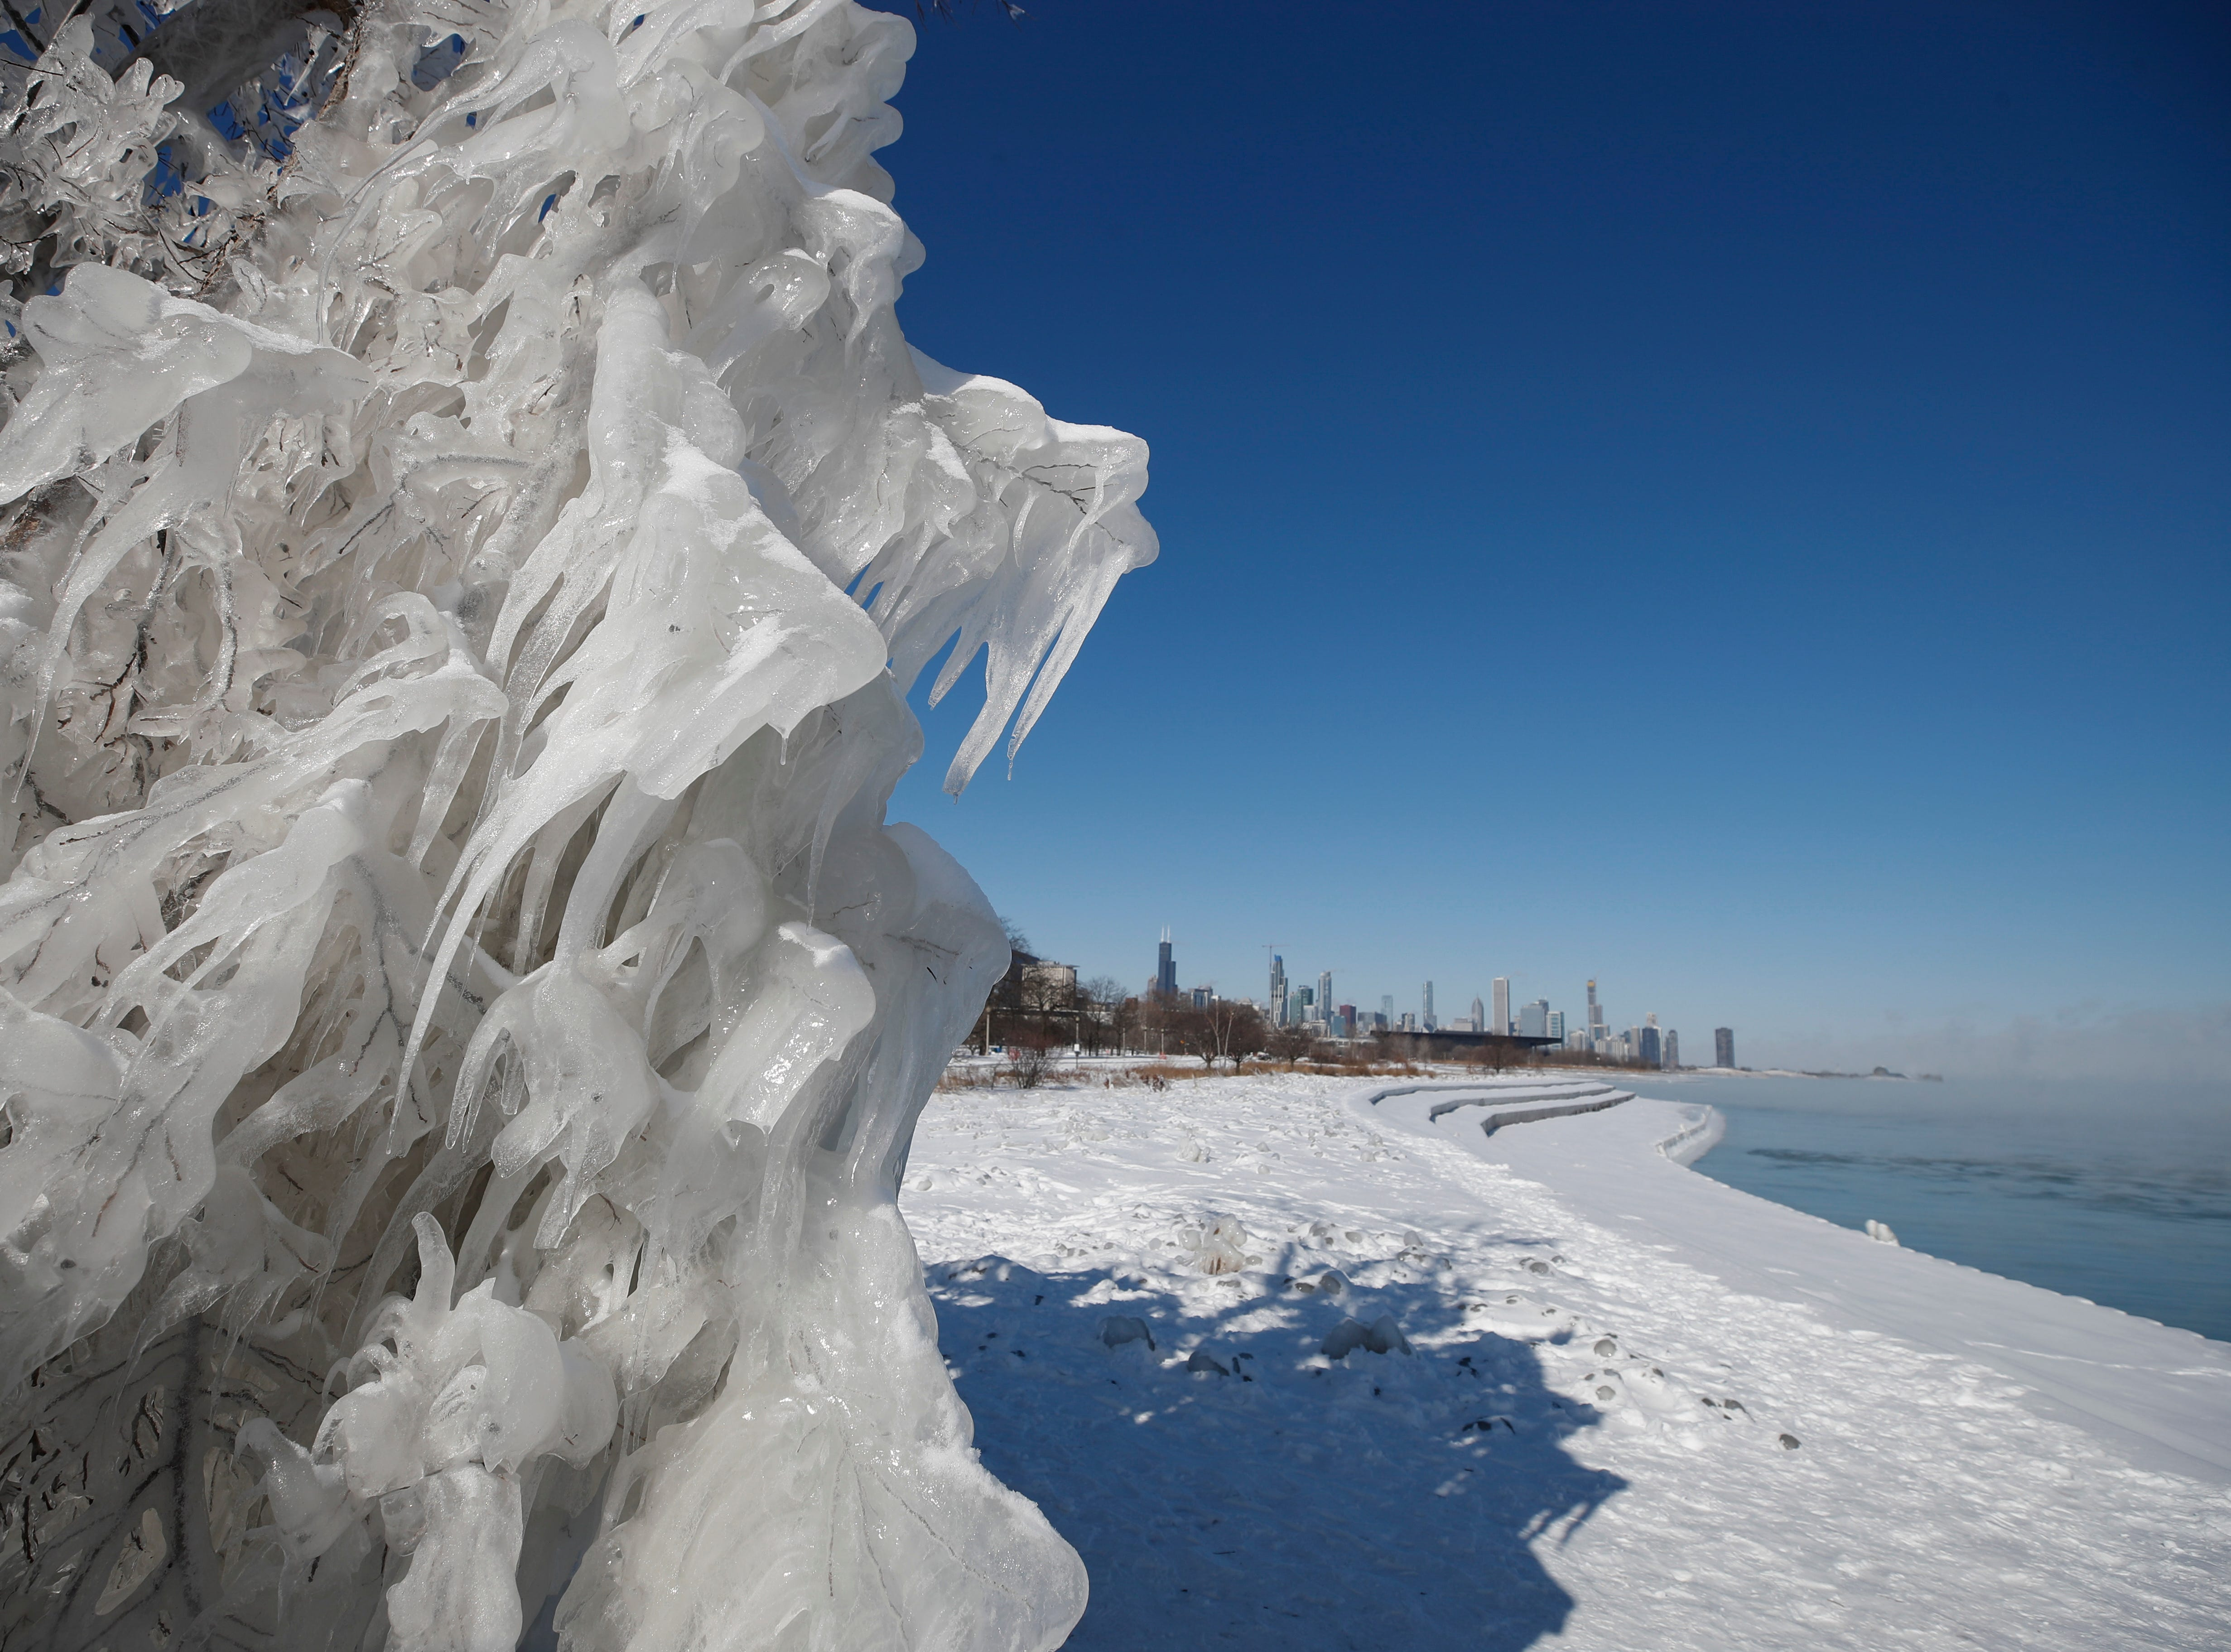 Ice and snow builds up along Lake Michigan in Chicago, Ill. on Jan. 30, 2019. The US Midwest is gripped by a cold spell as a polar vortex sent temperatures far below zero degrees Celsius. According to meteorologists temperatures in Chicago area could drop to minus 25F degrees.